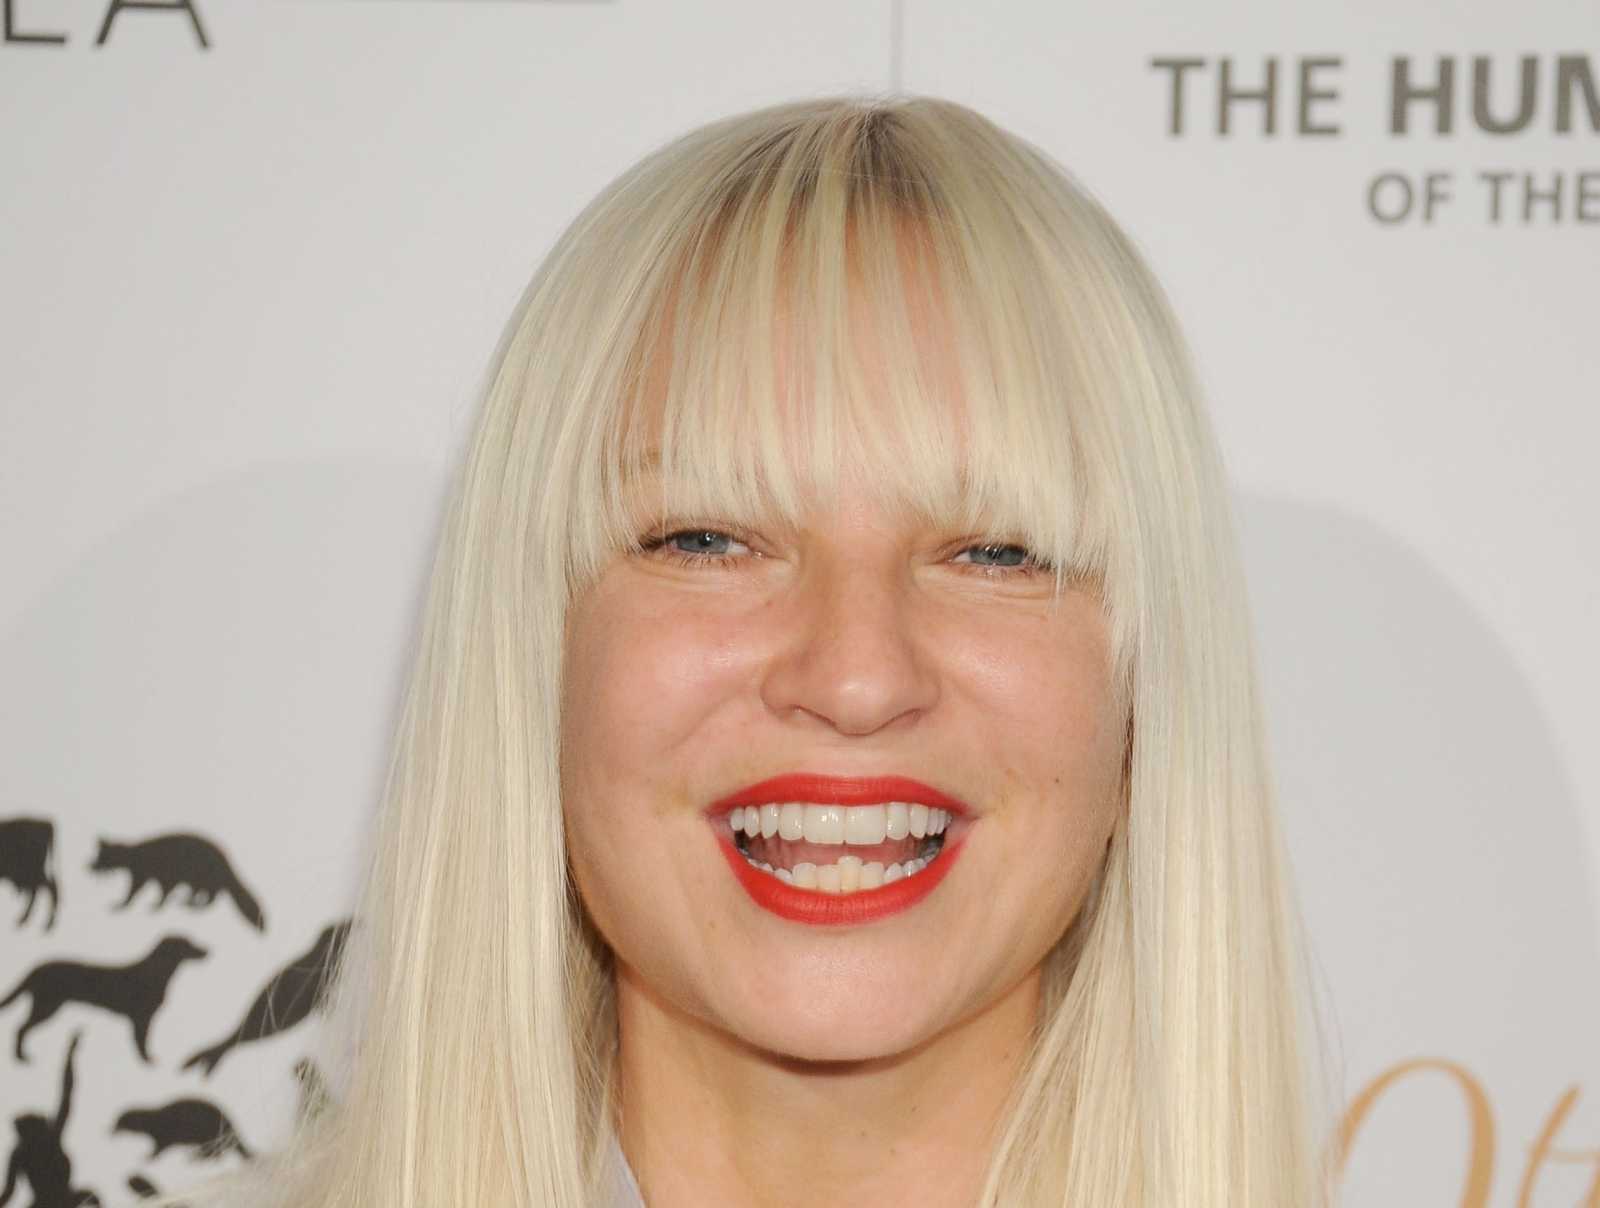 Pop star Sia exposes bit too much skin as she suffers wardrobe malfunction in Instagram photo